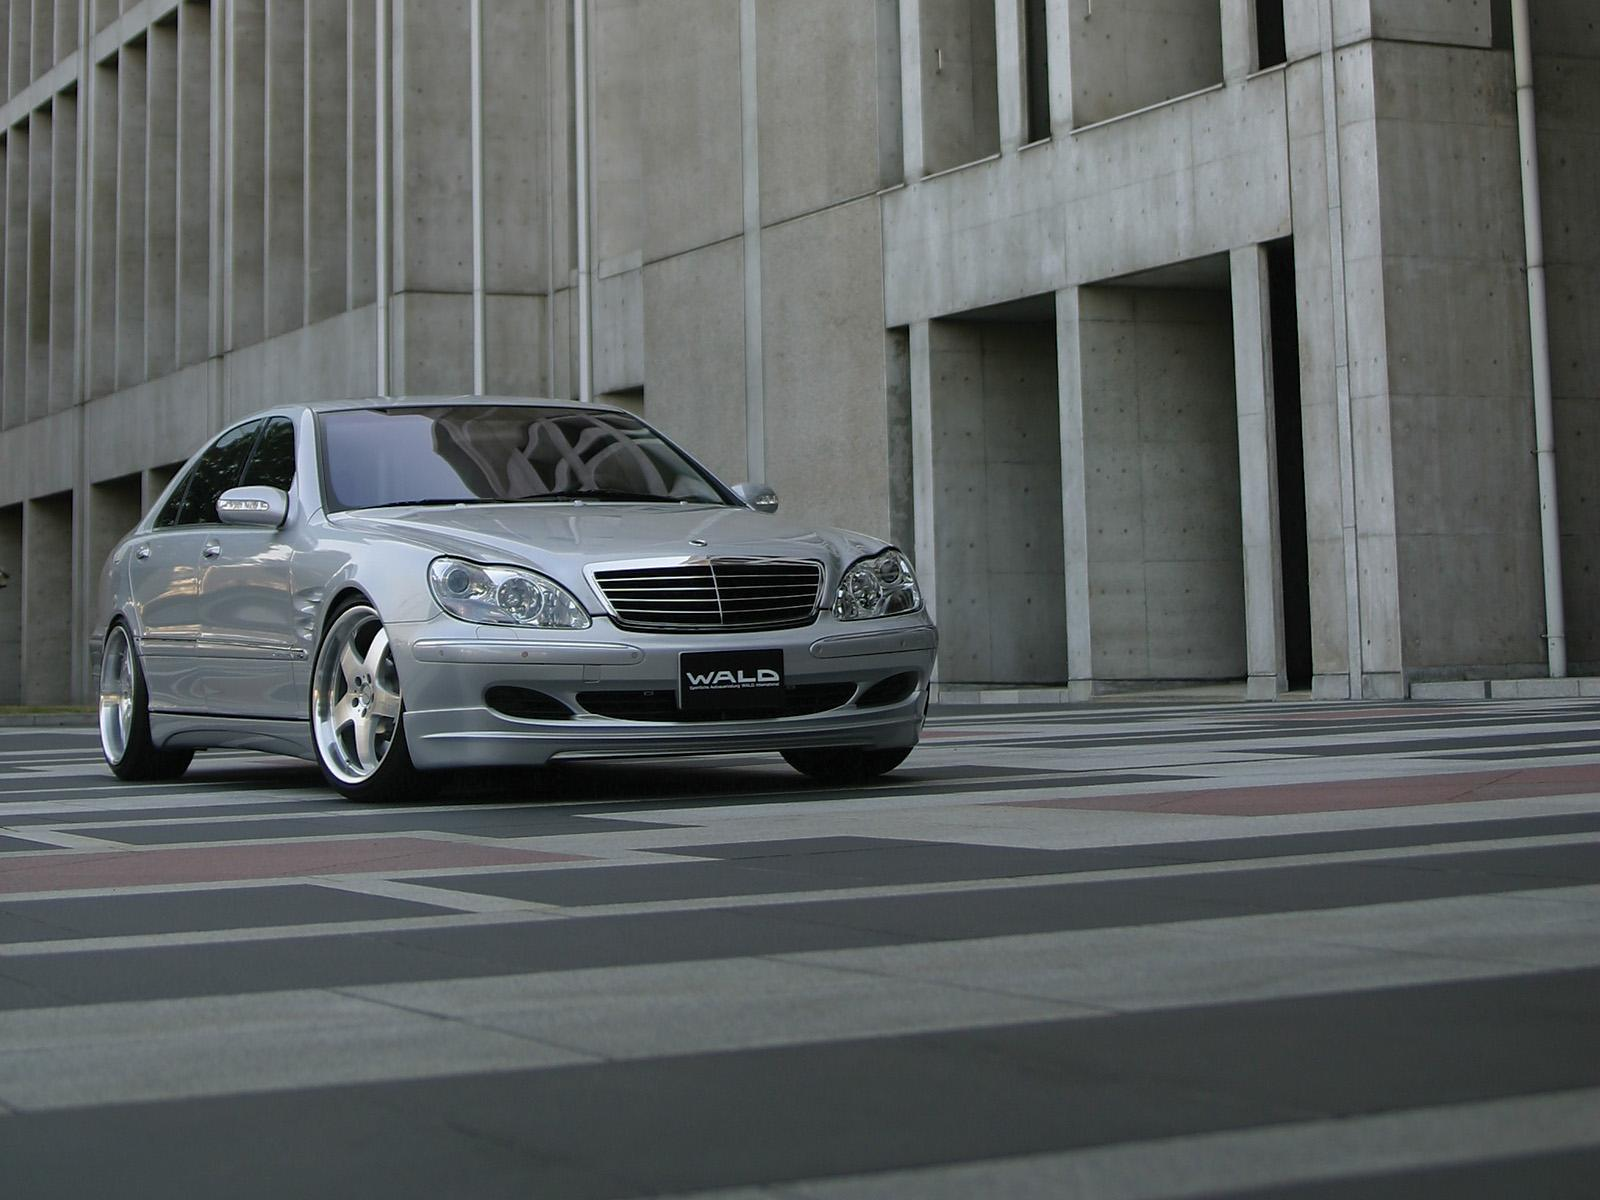 Wald Bercedes Benz S600 photo 26129